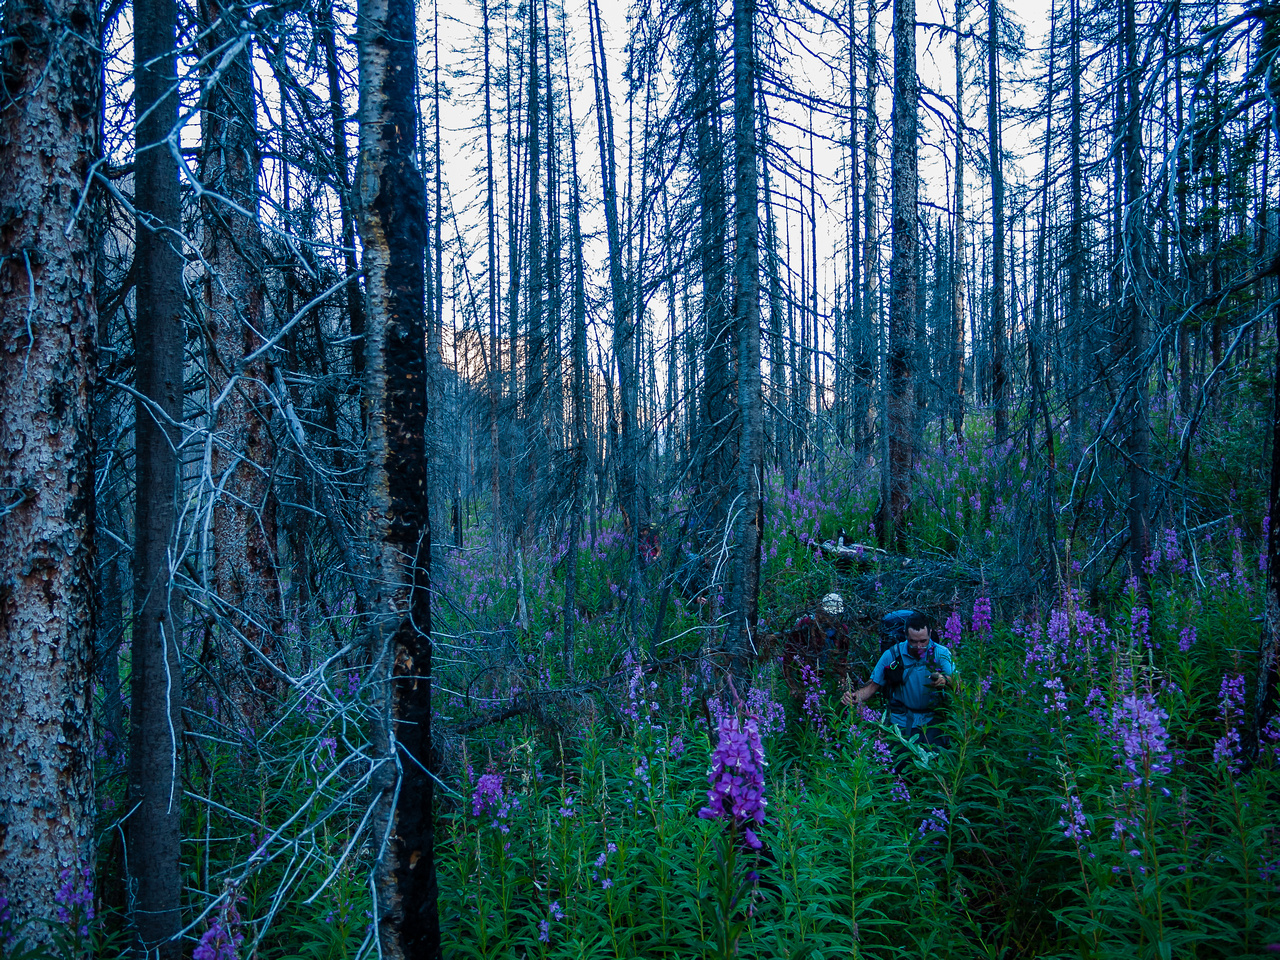 I've never encountered such deep fireweed before! The fact that it was soaking wet didn't help either.